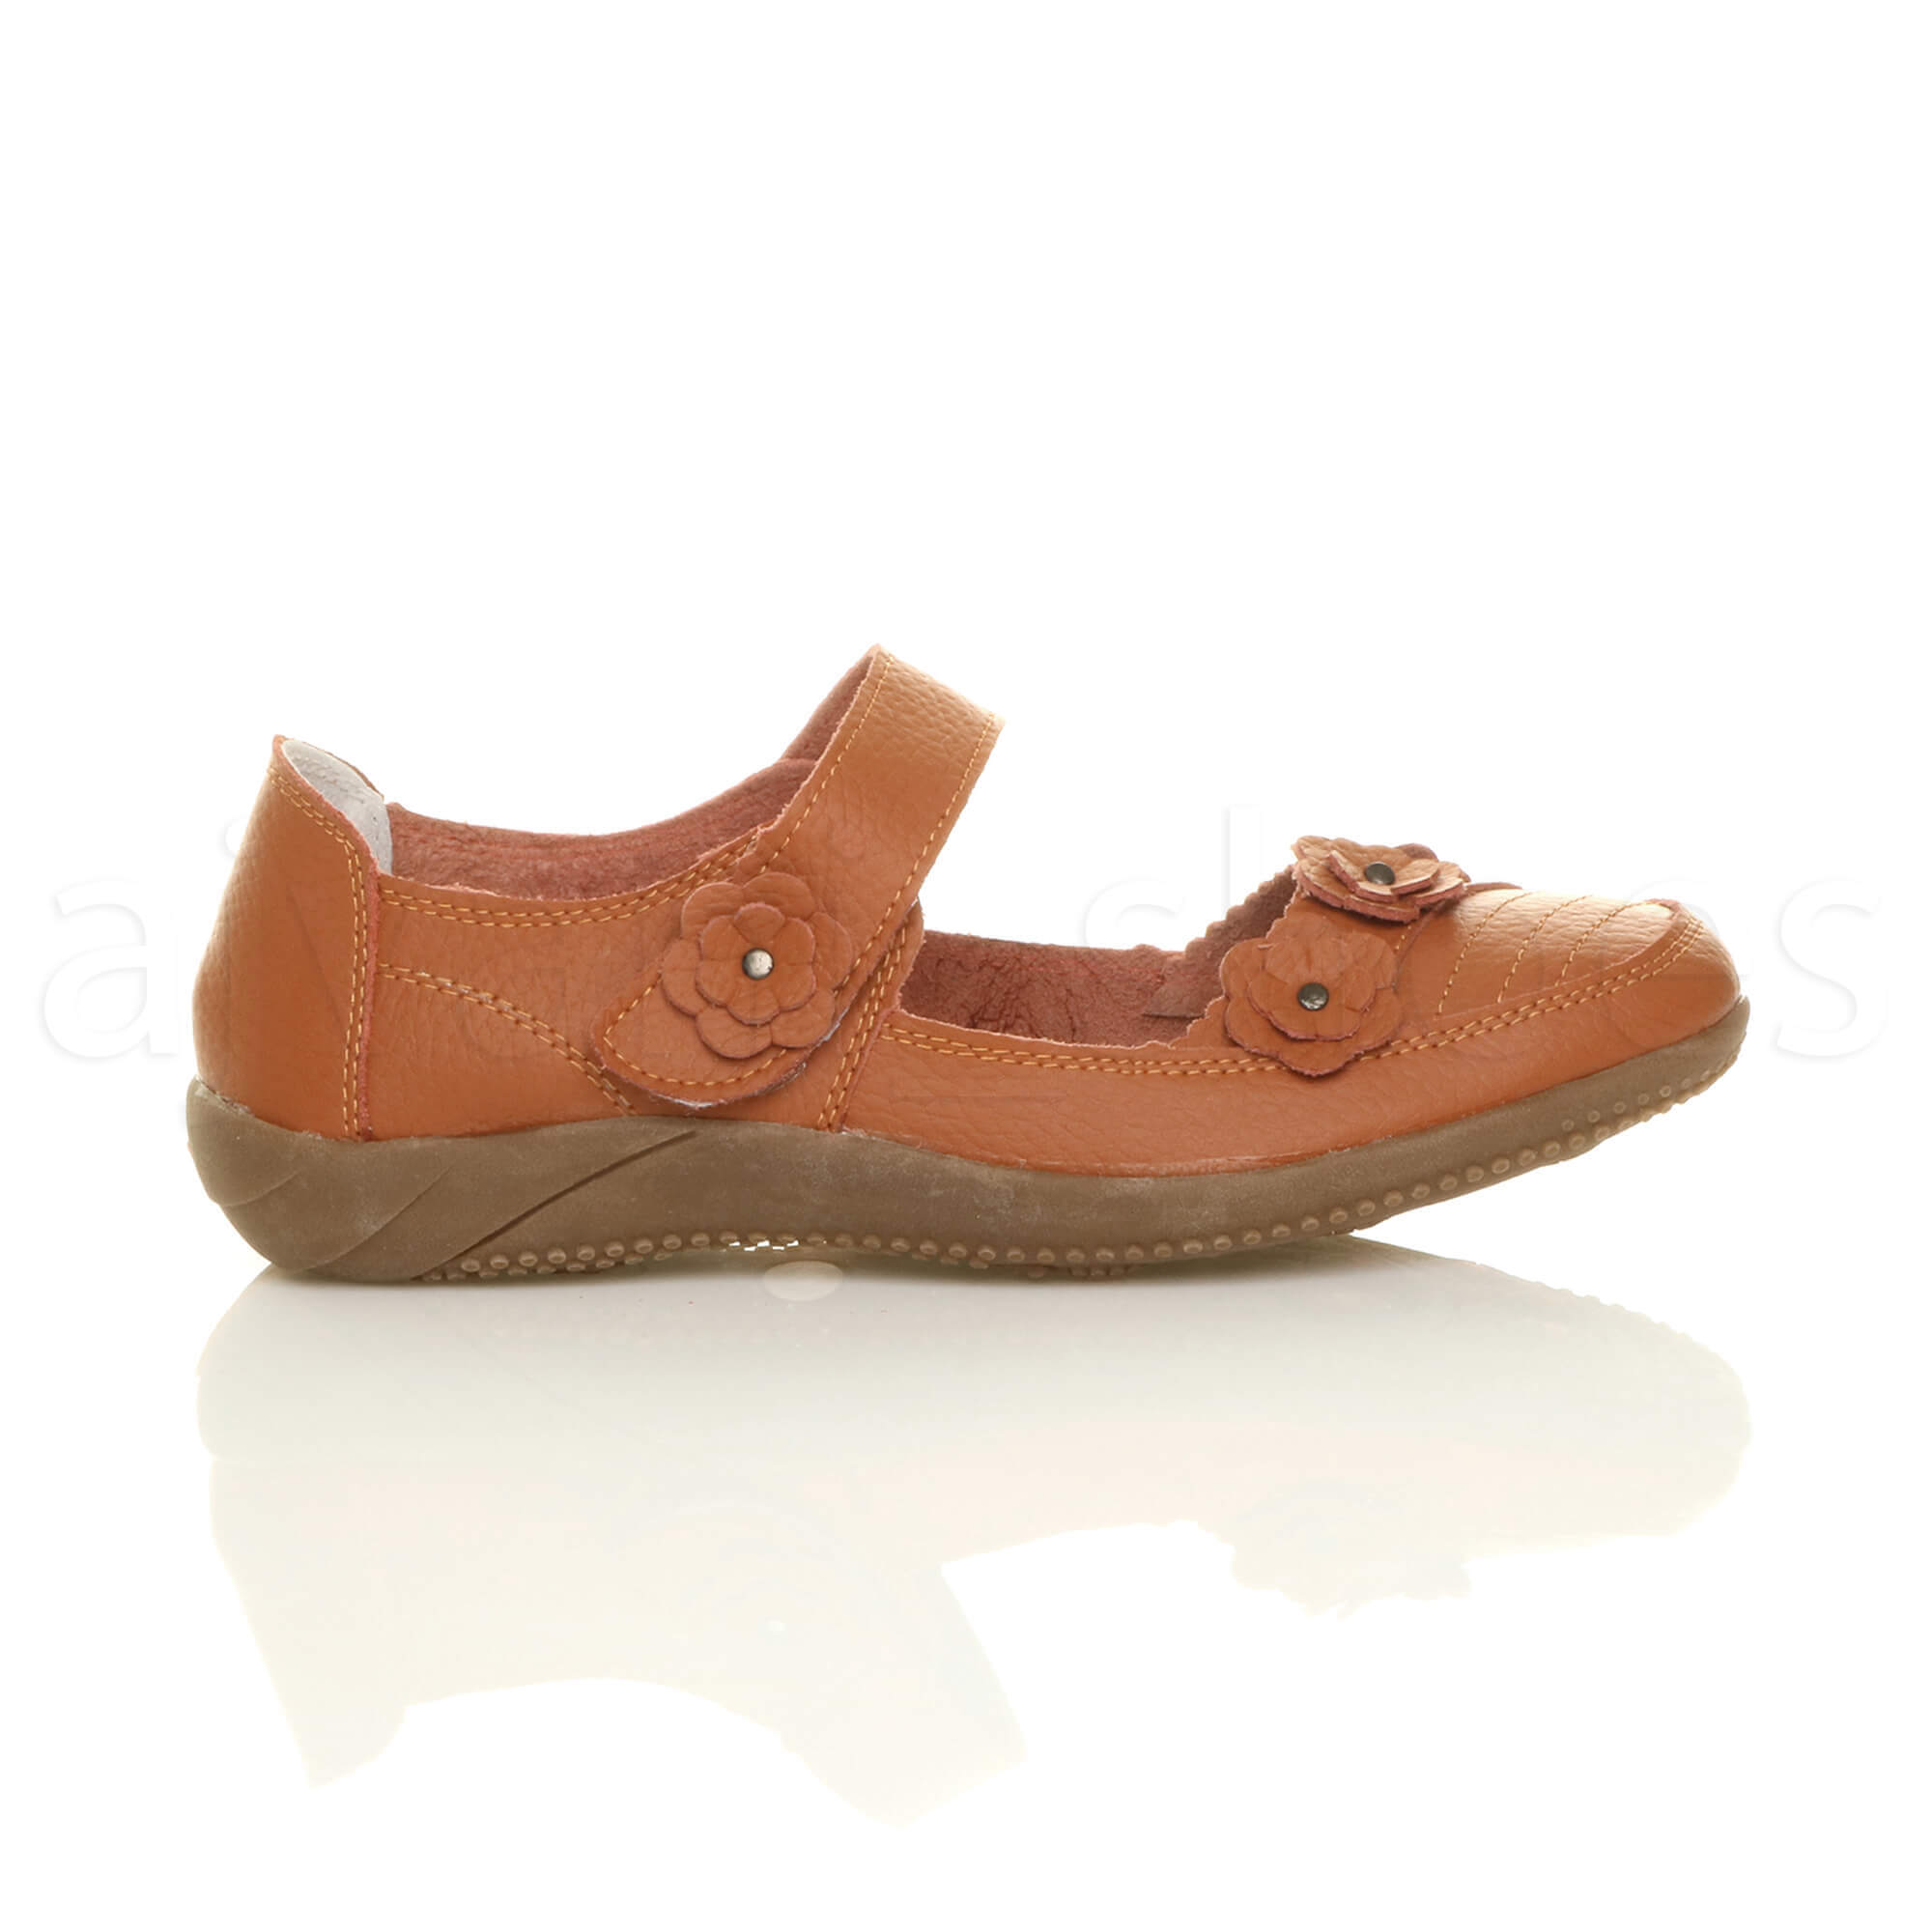 Dr Comfort Womens Shoes Mary Jane